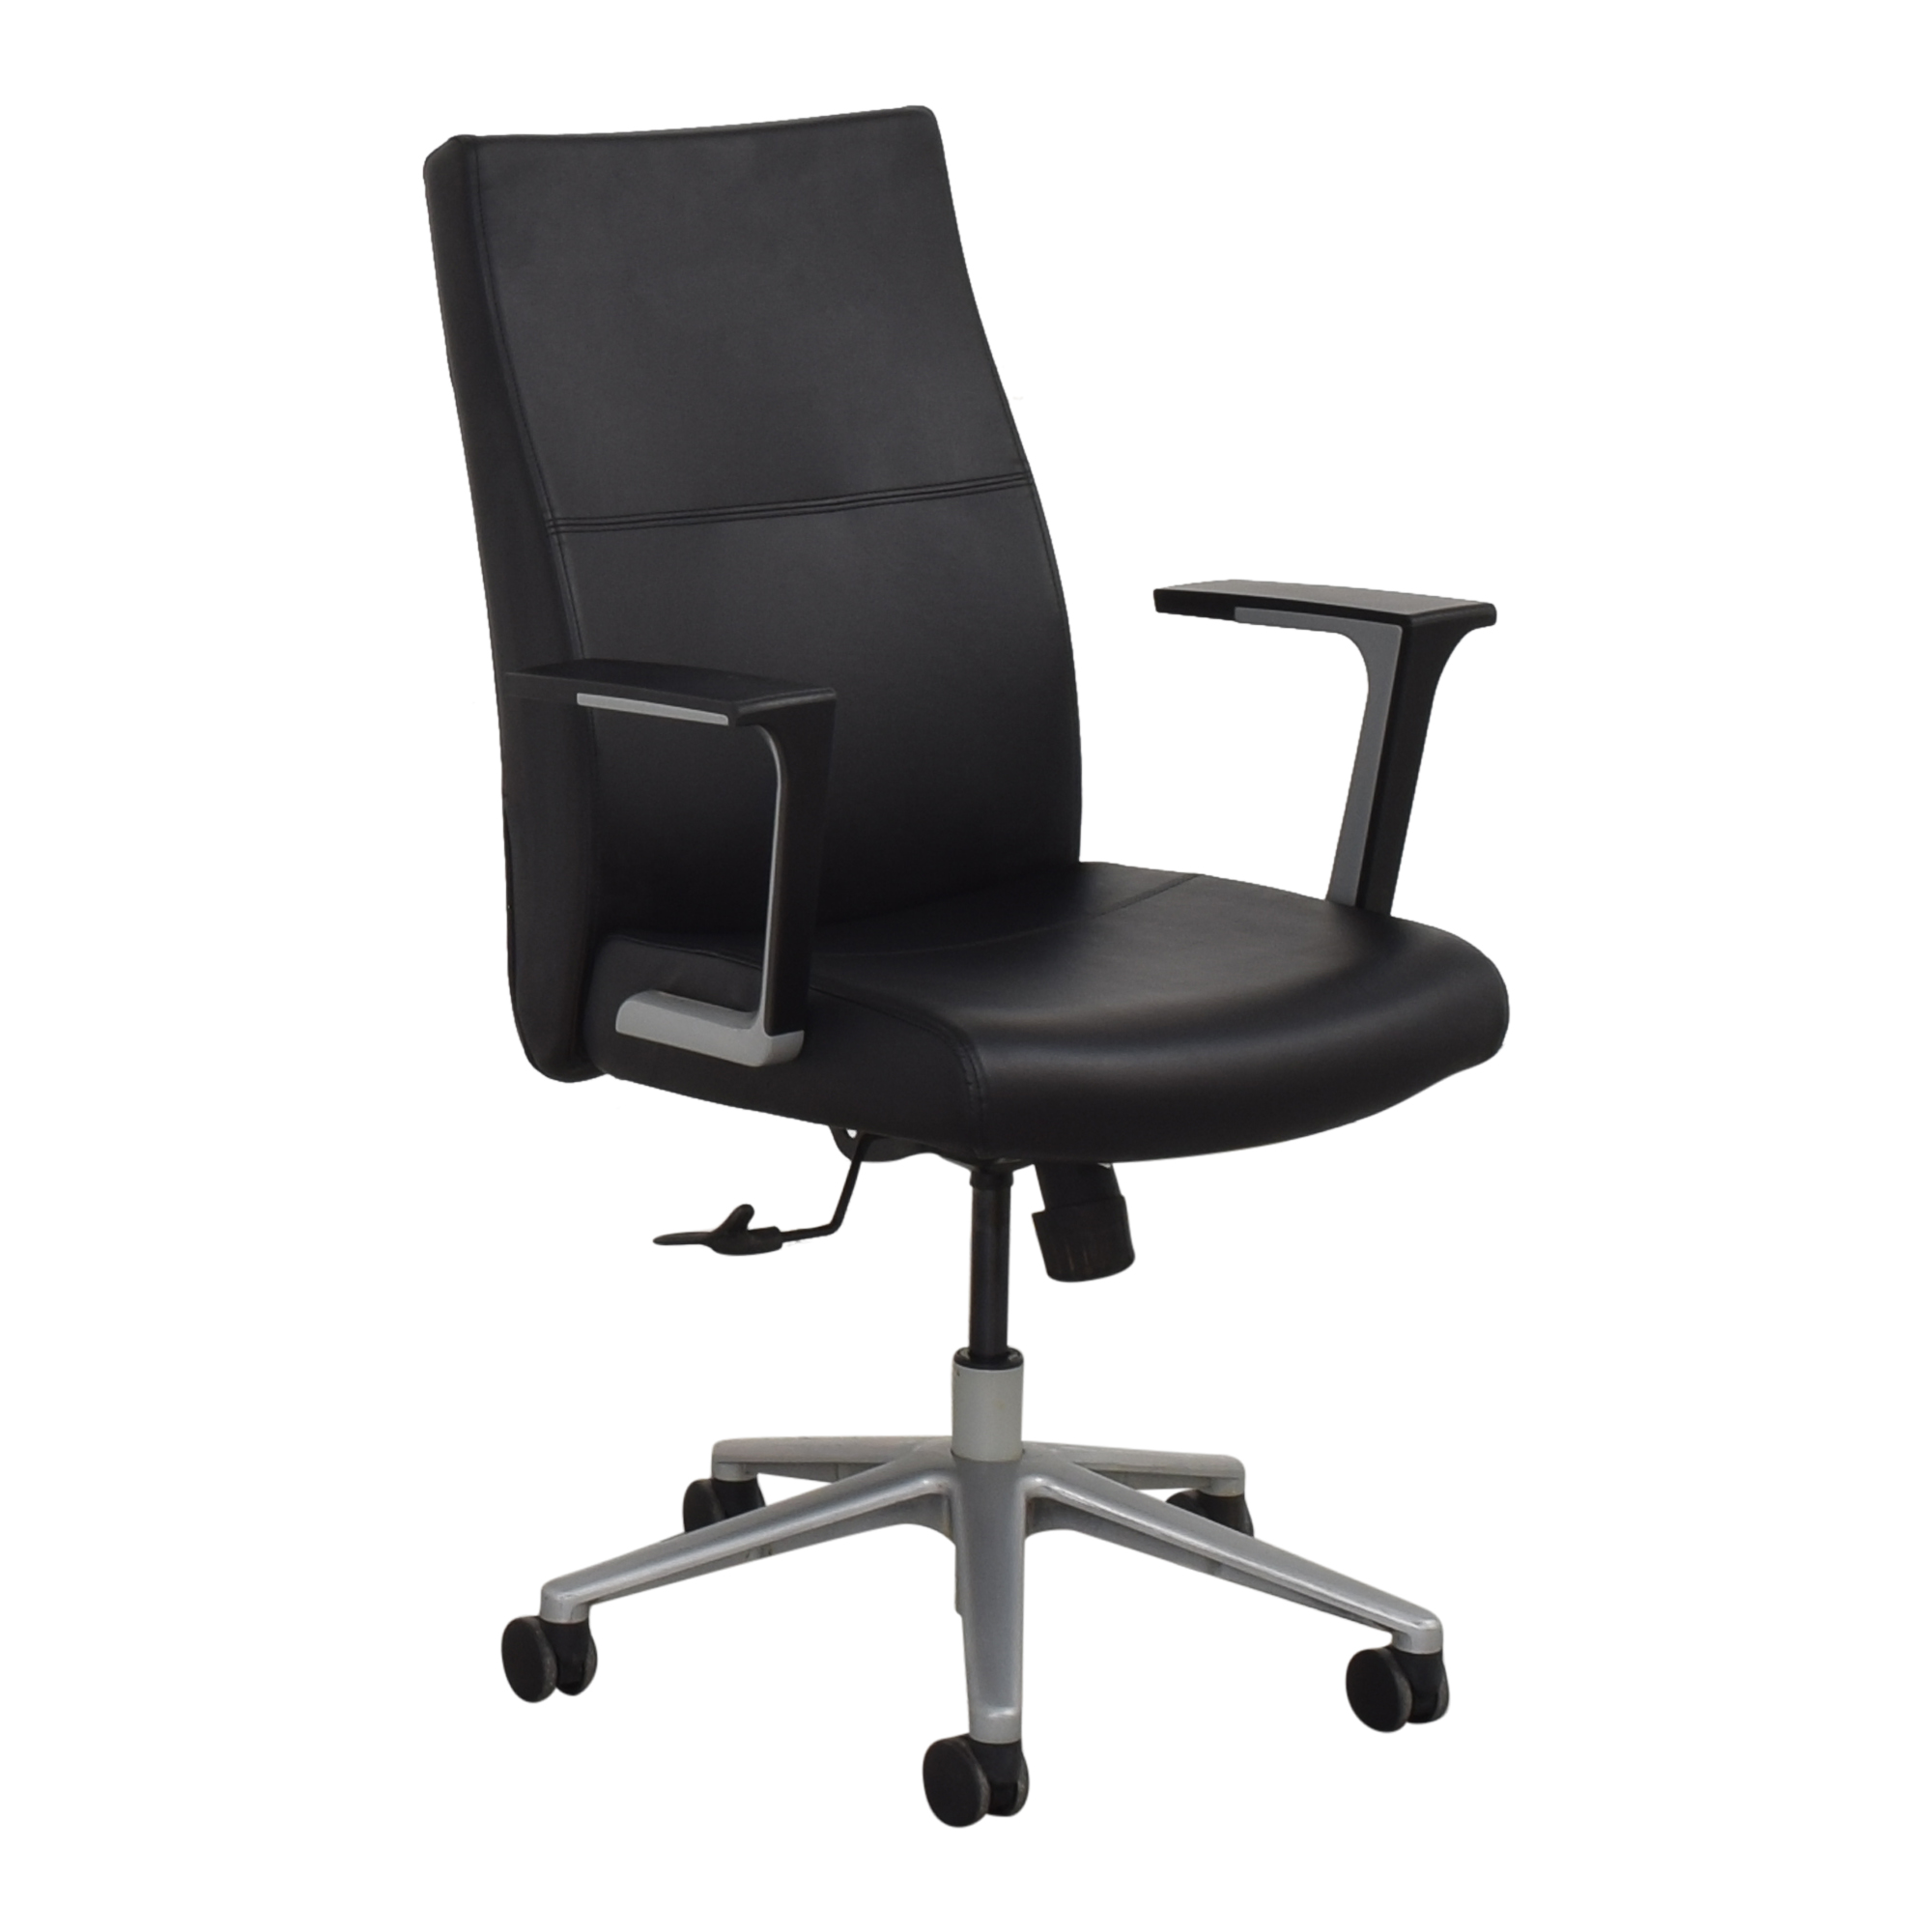 SitOnIt SitOnIt Prava Office Chair Home Office Chairs